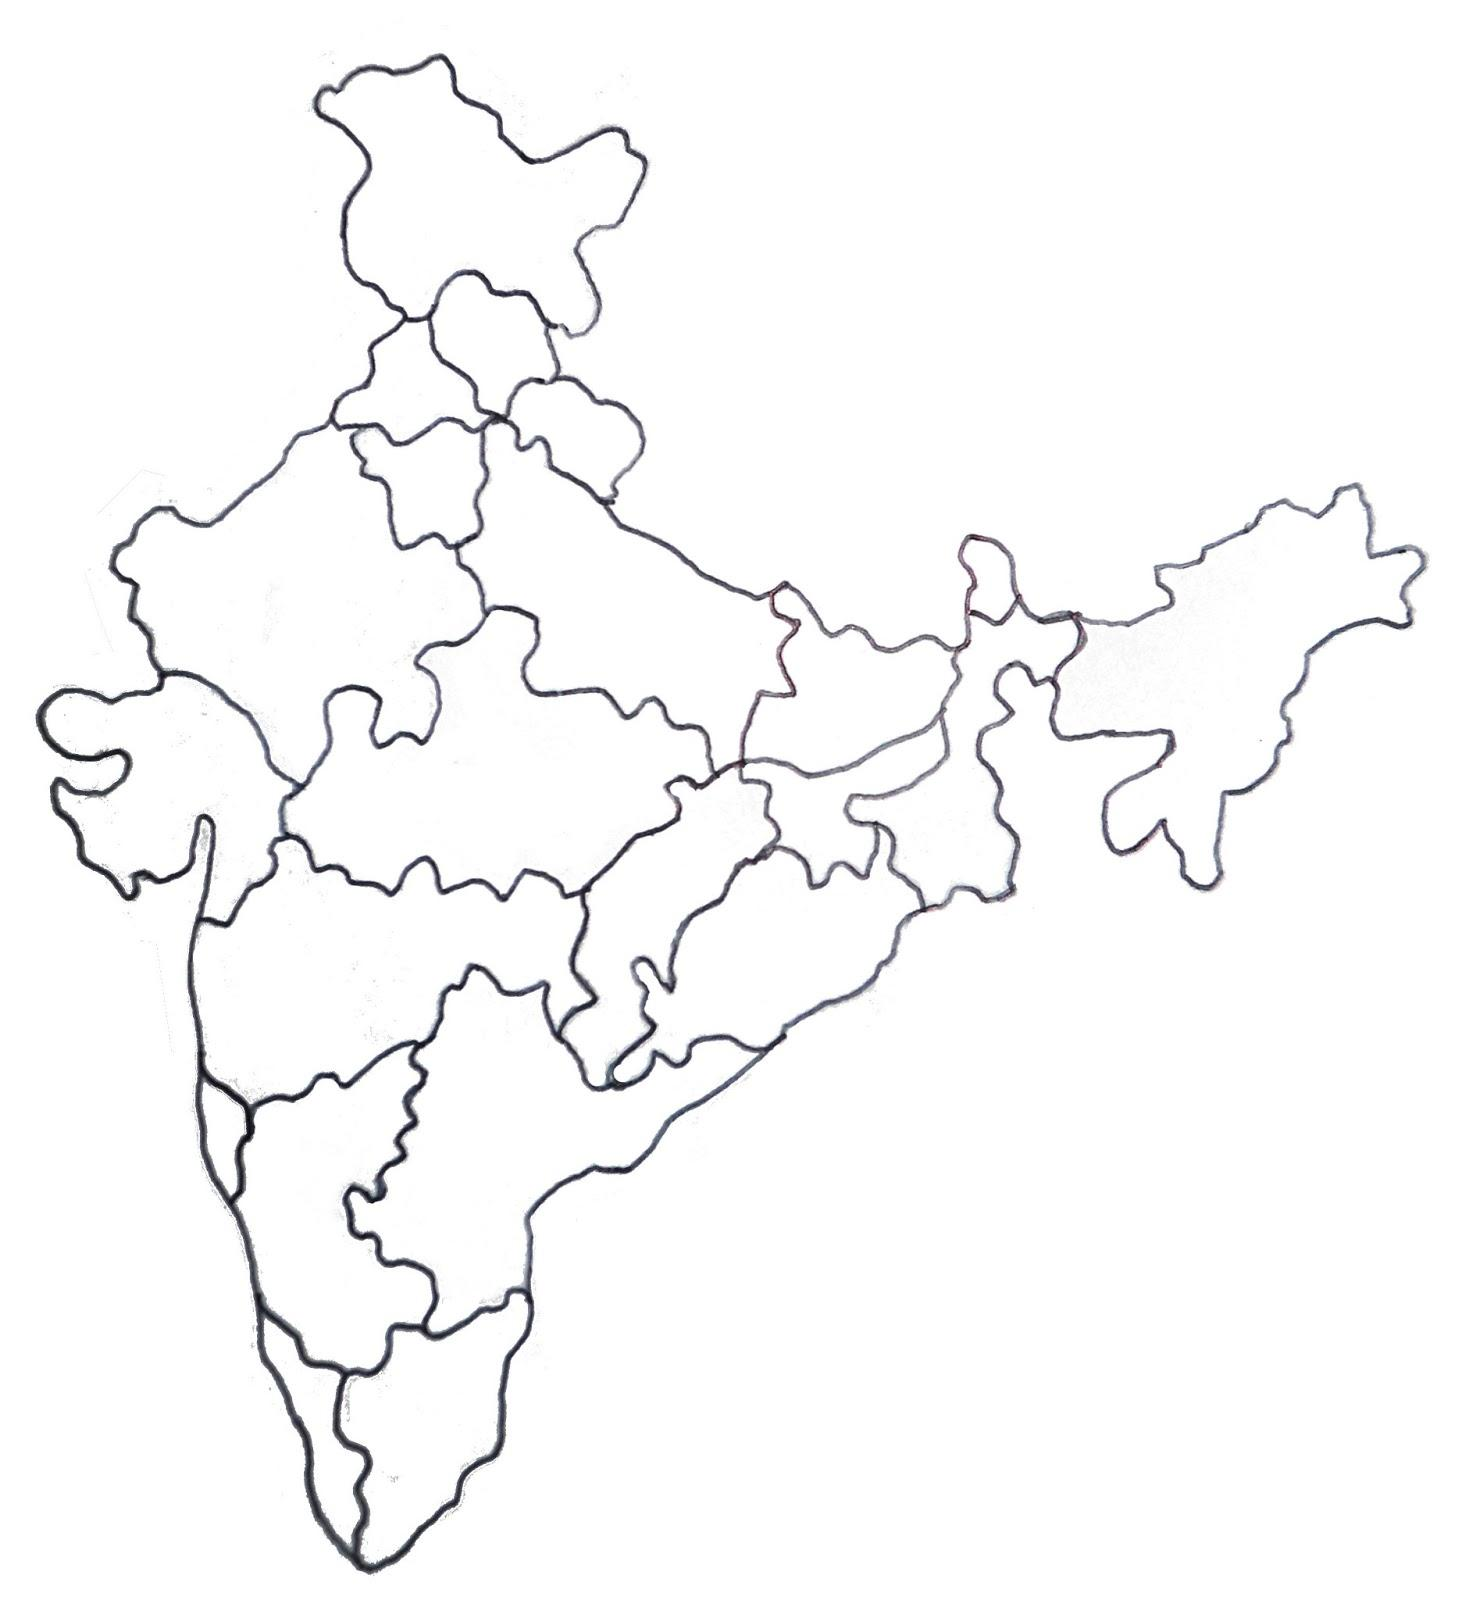 India map drawing at getdrawings free for personal use india india map drawing 22 india map